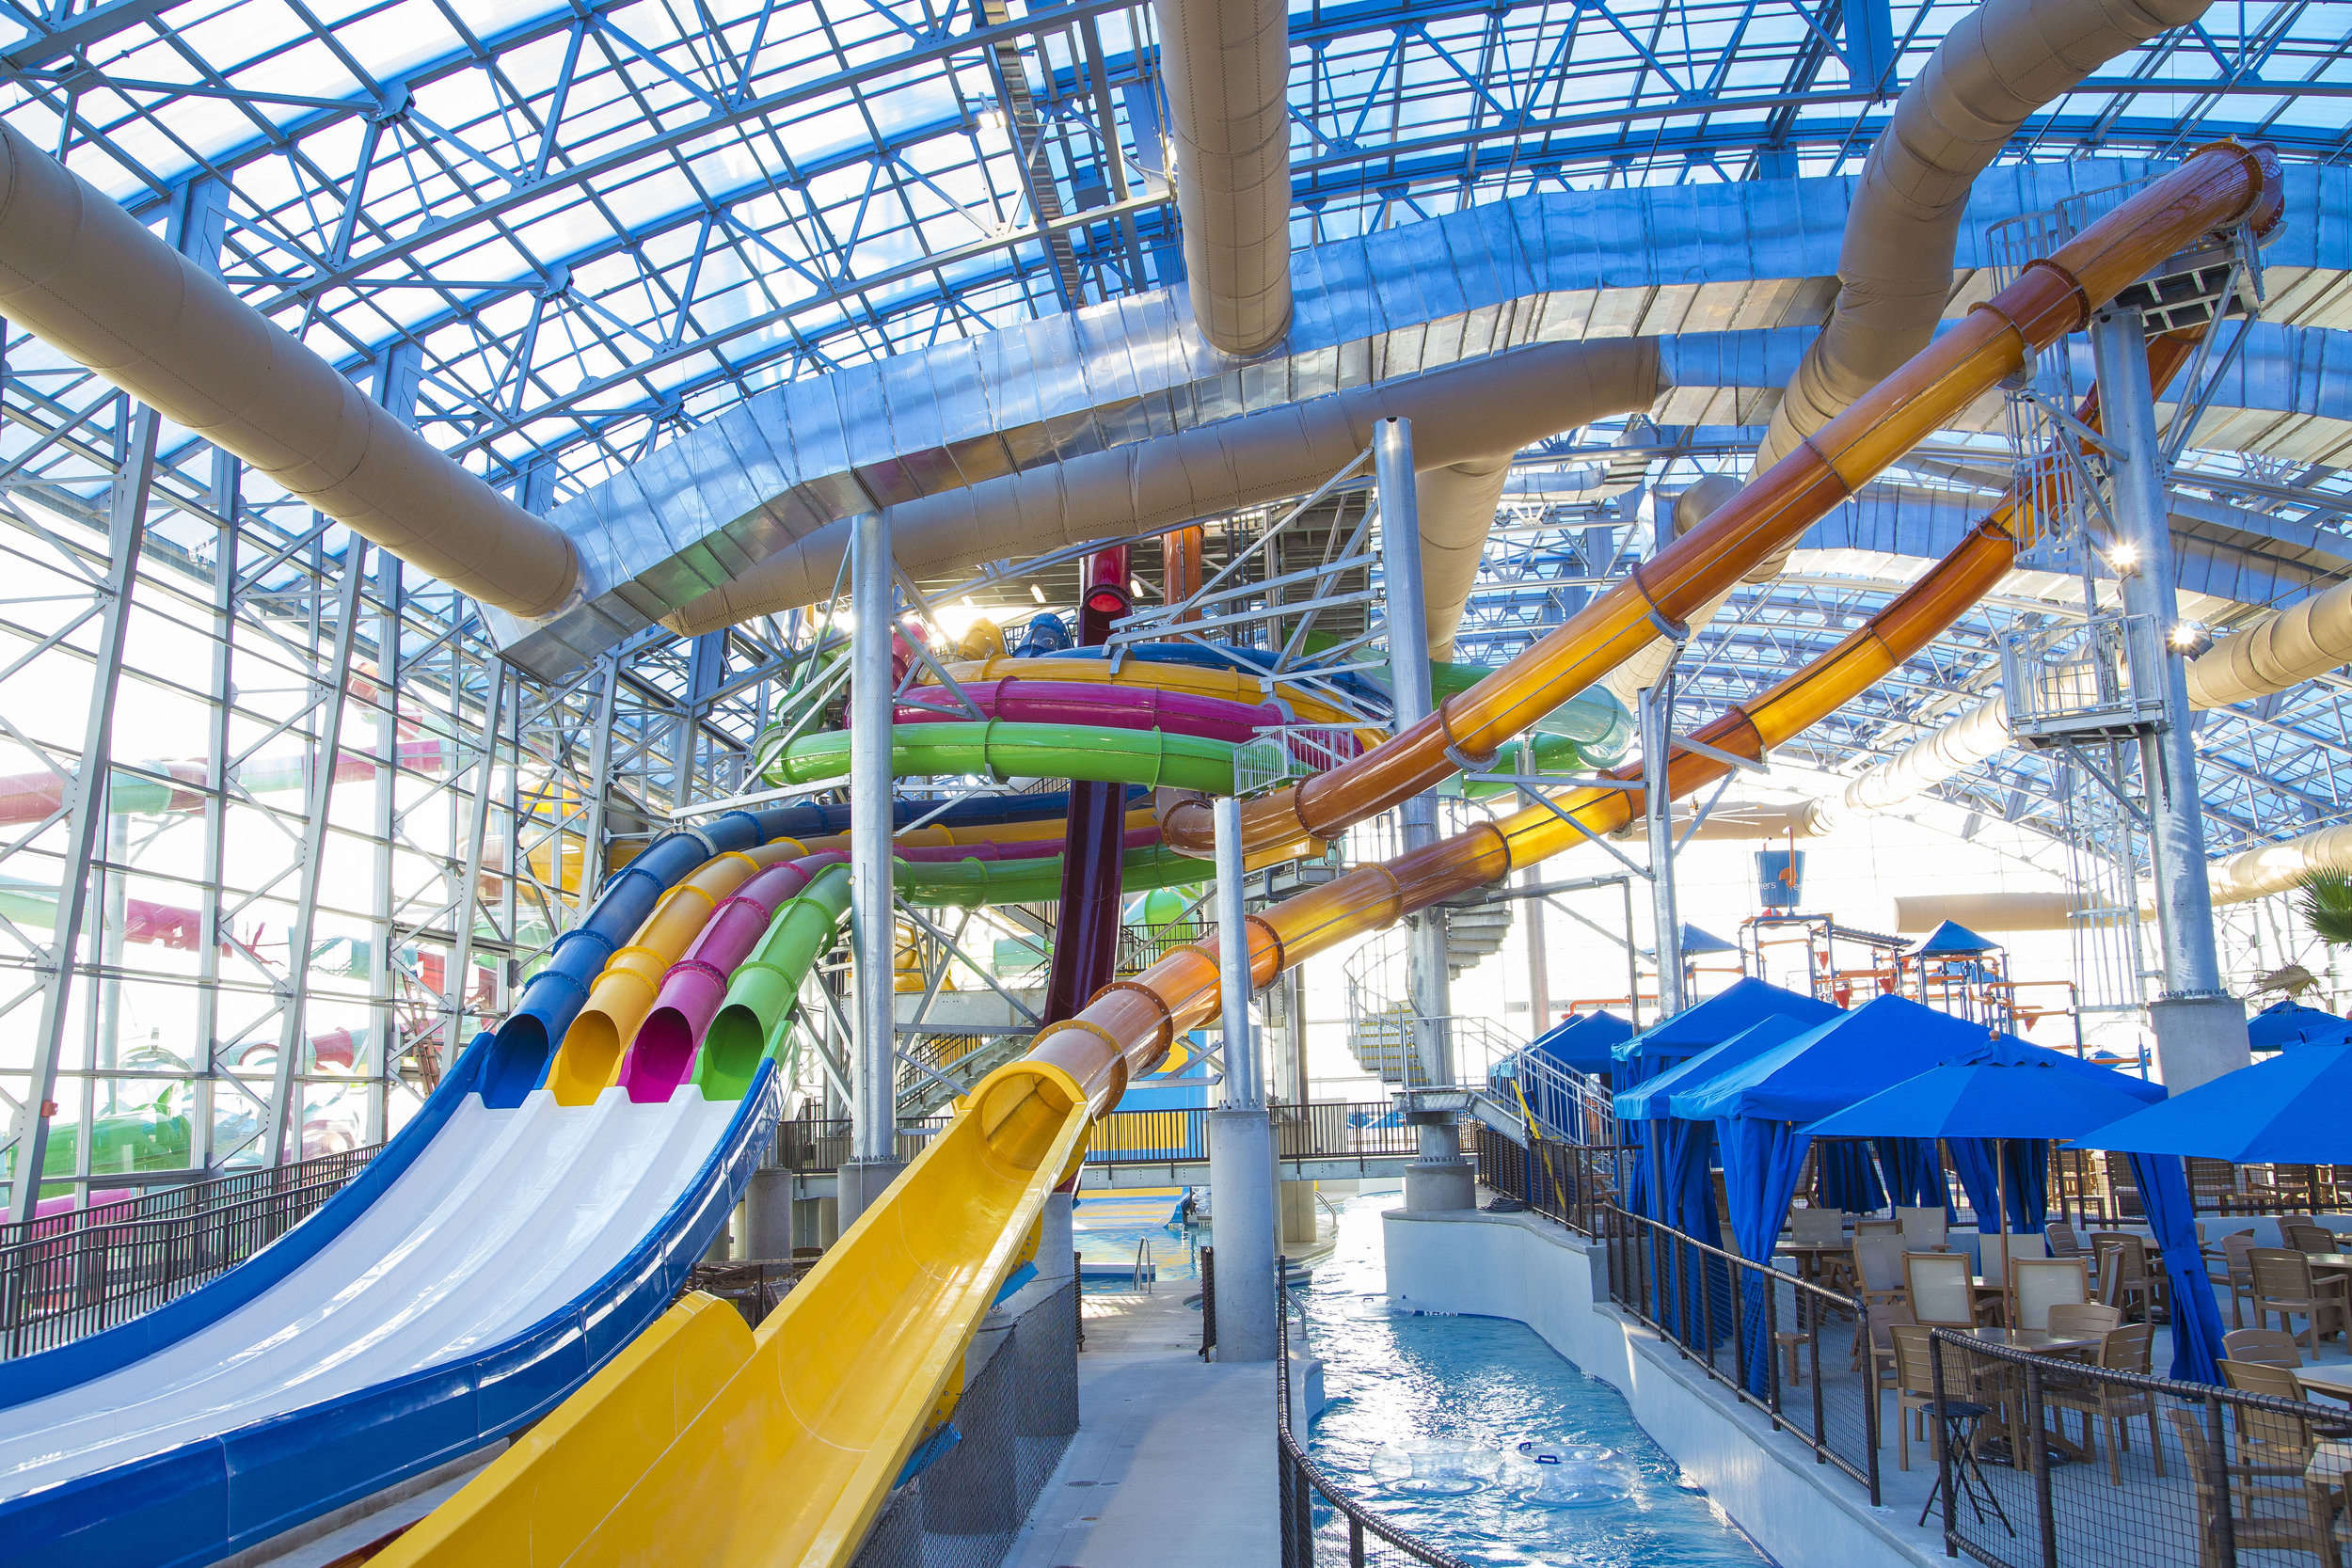 slide tower at Epic Waters